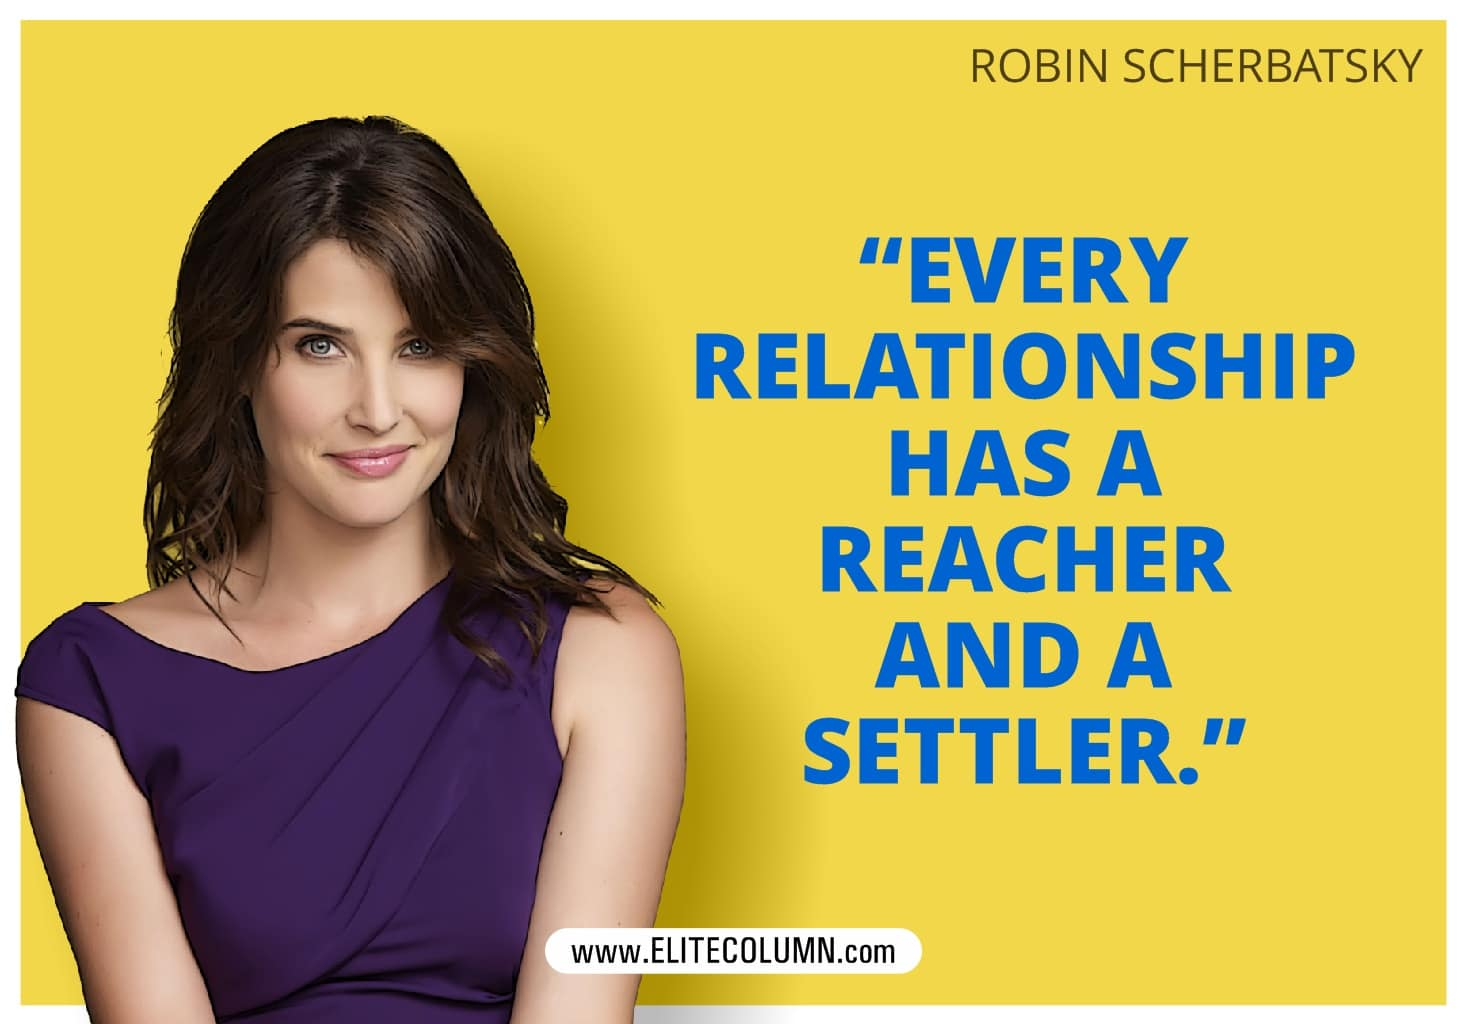 How I Met Your Mother Robin Scherbatsky poster